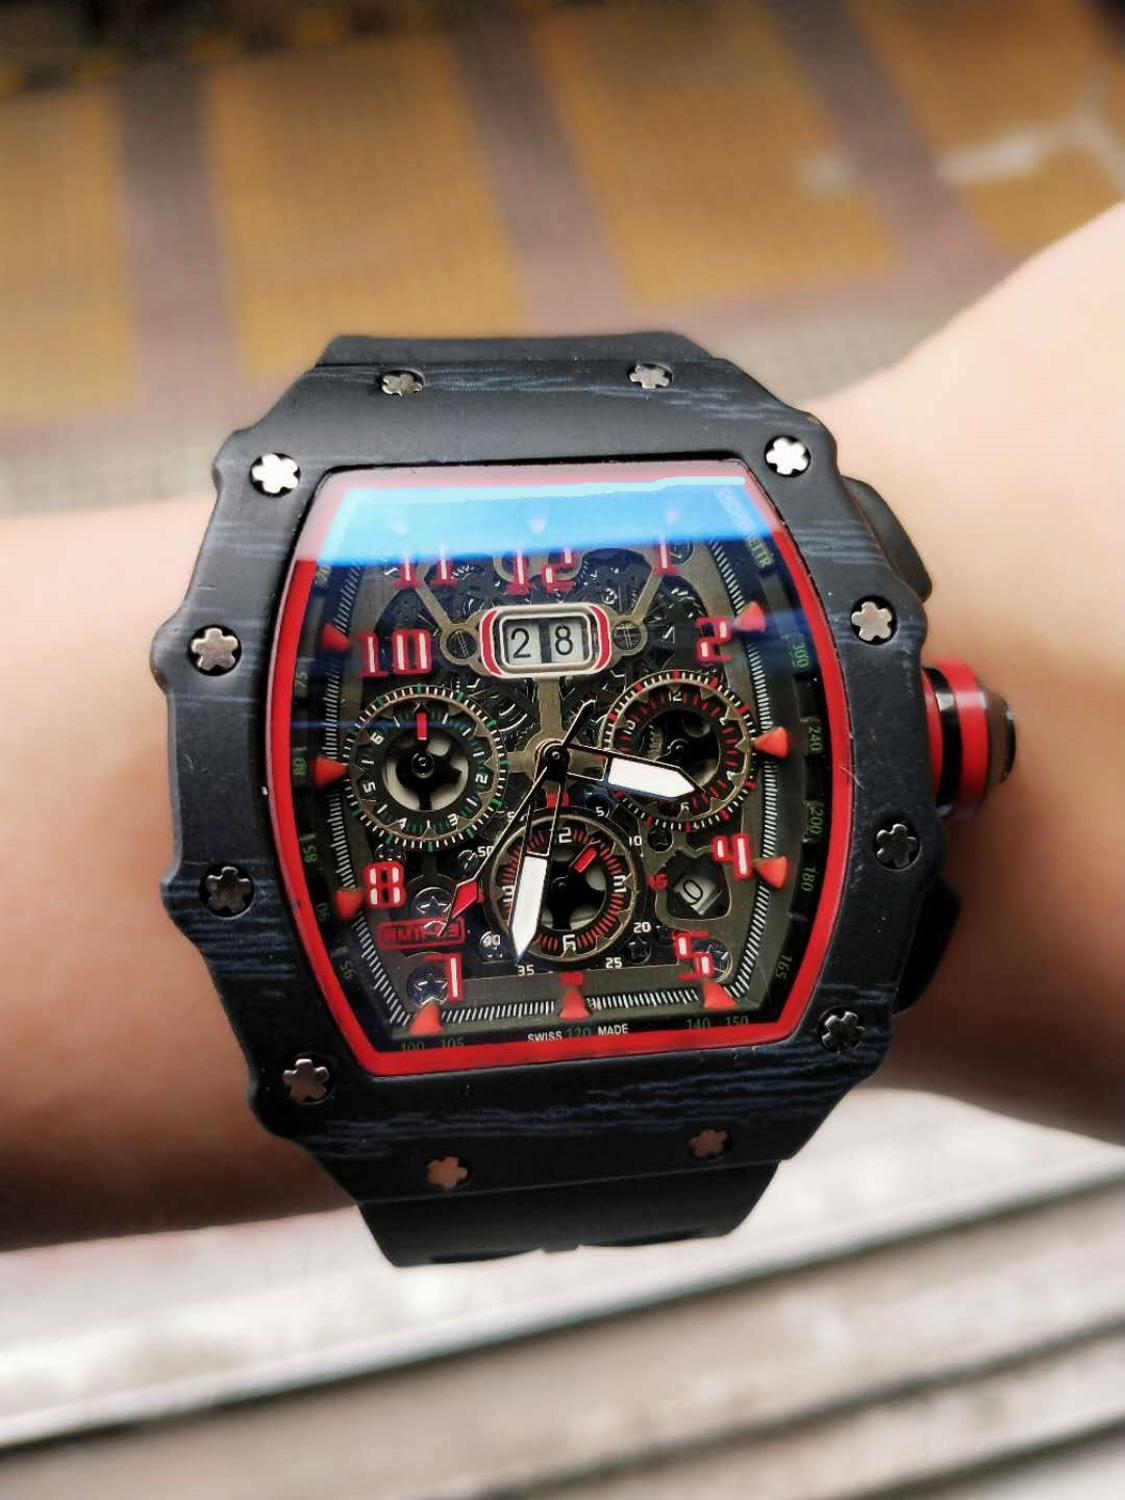 Aaa Men's High-end Fashion Watch, Full-function Quartz Watch, Silicone Strap, High Quality And High Quality.